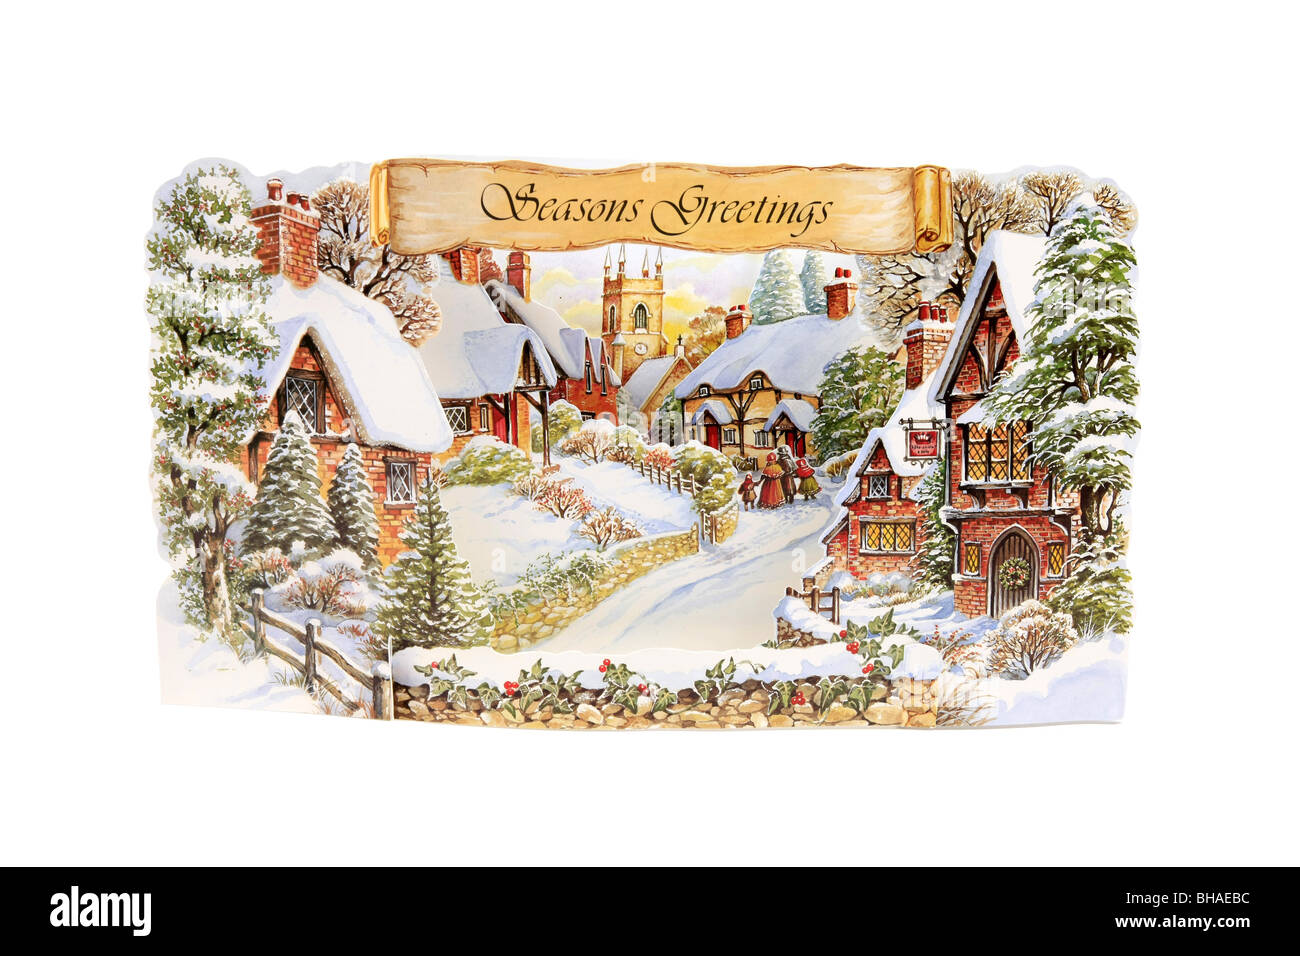 3D Christmas Card against a white background - Stock Image